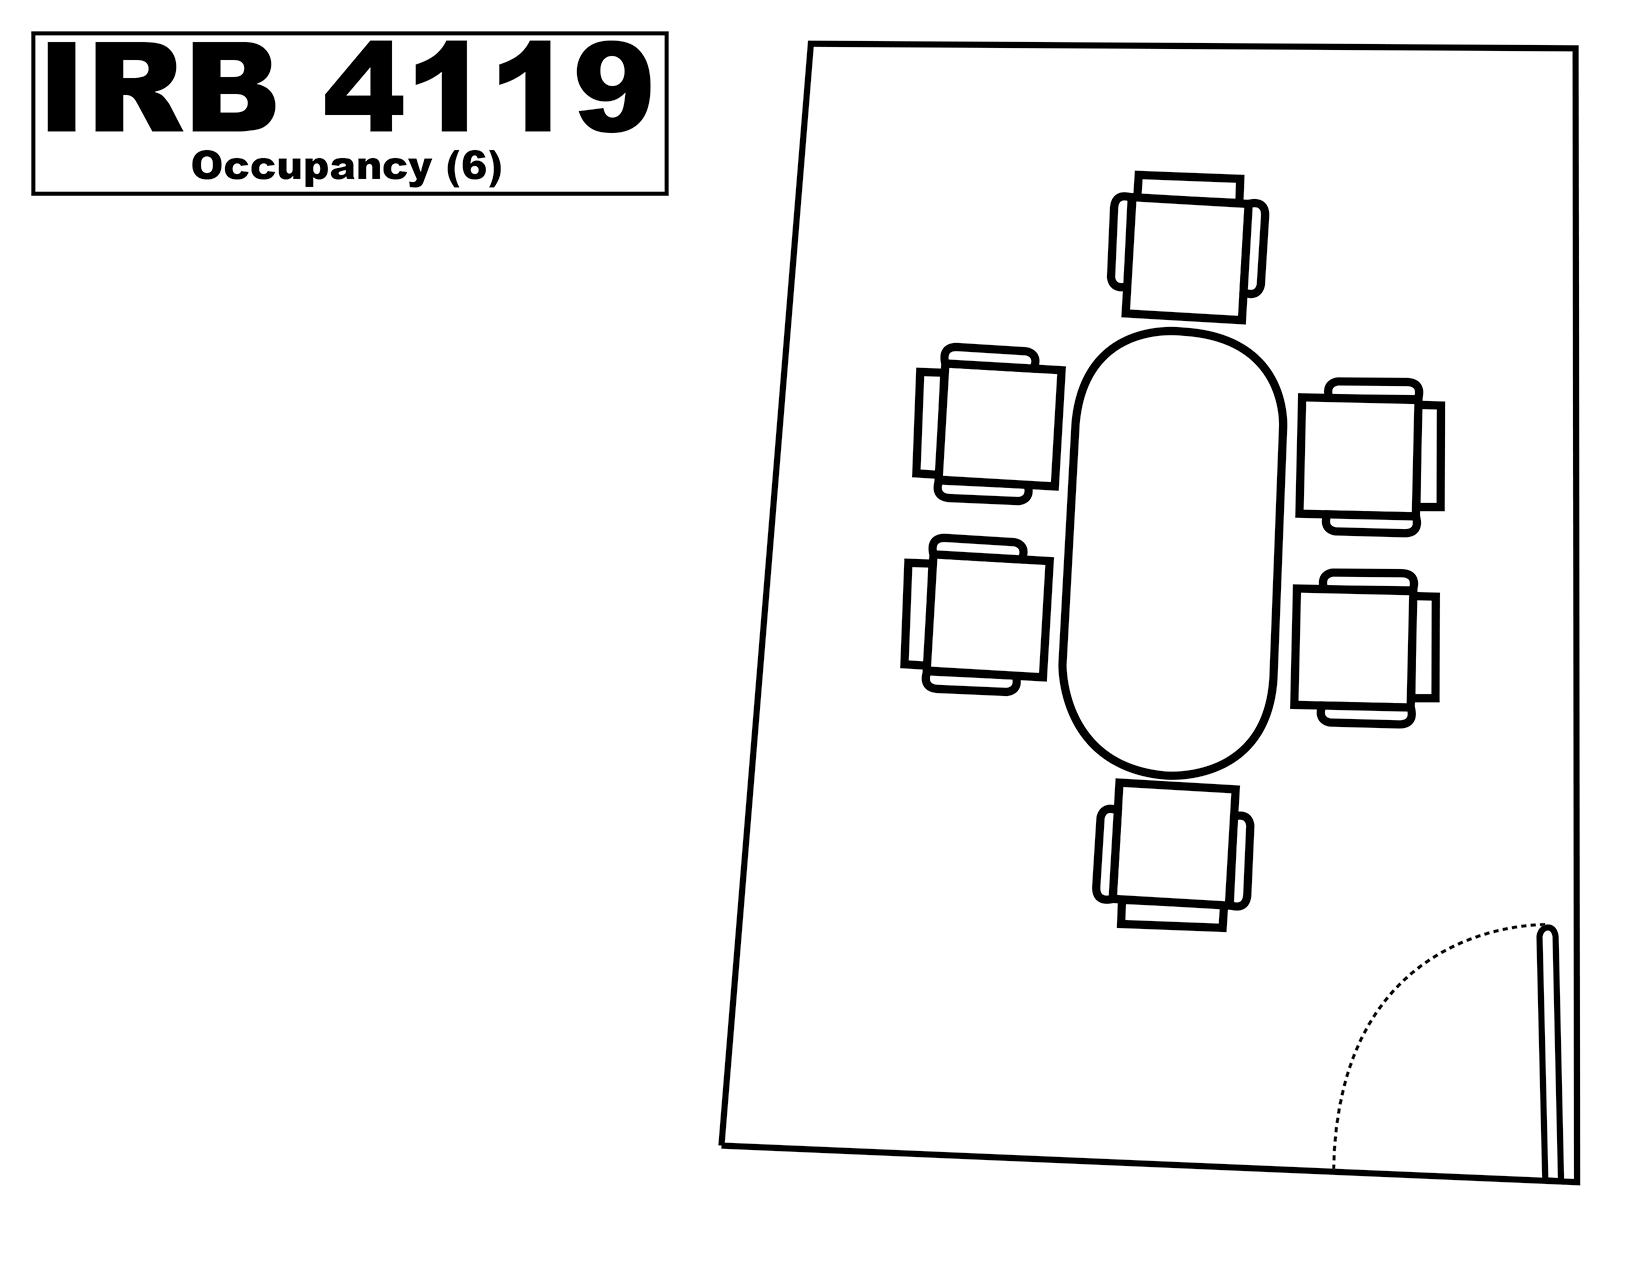 IRB4119 floorplan